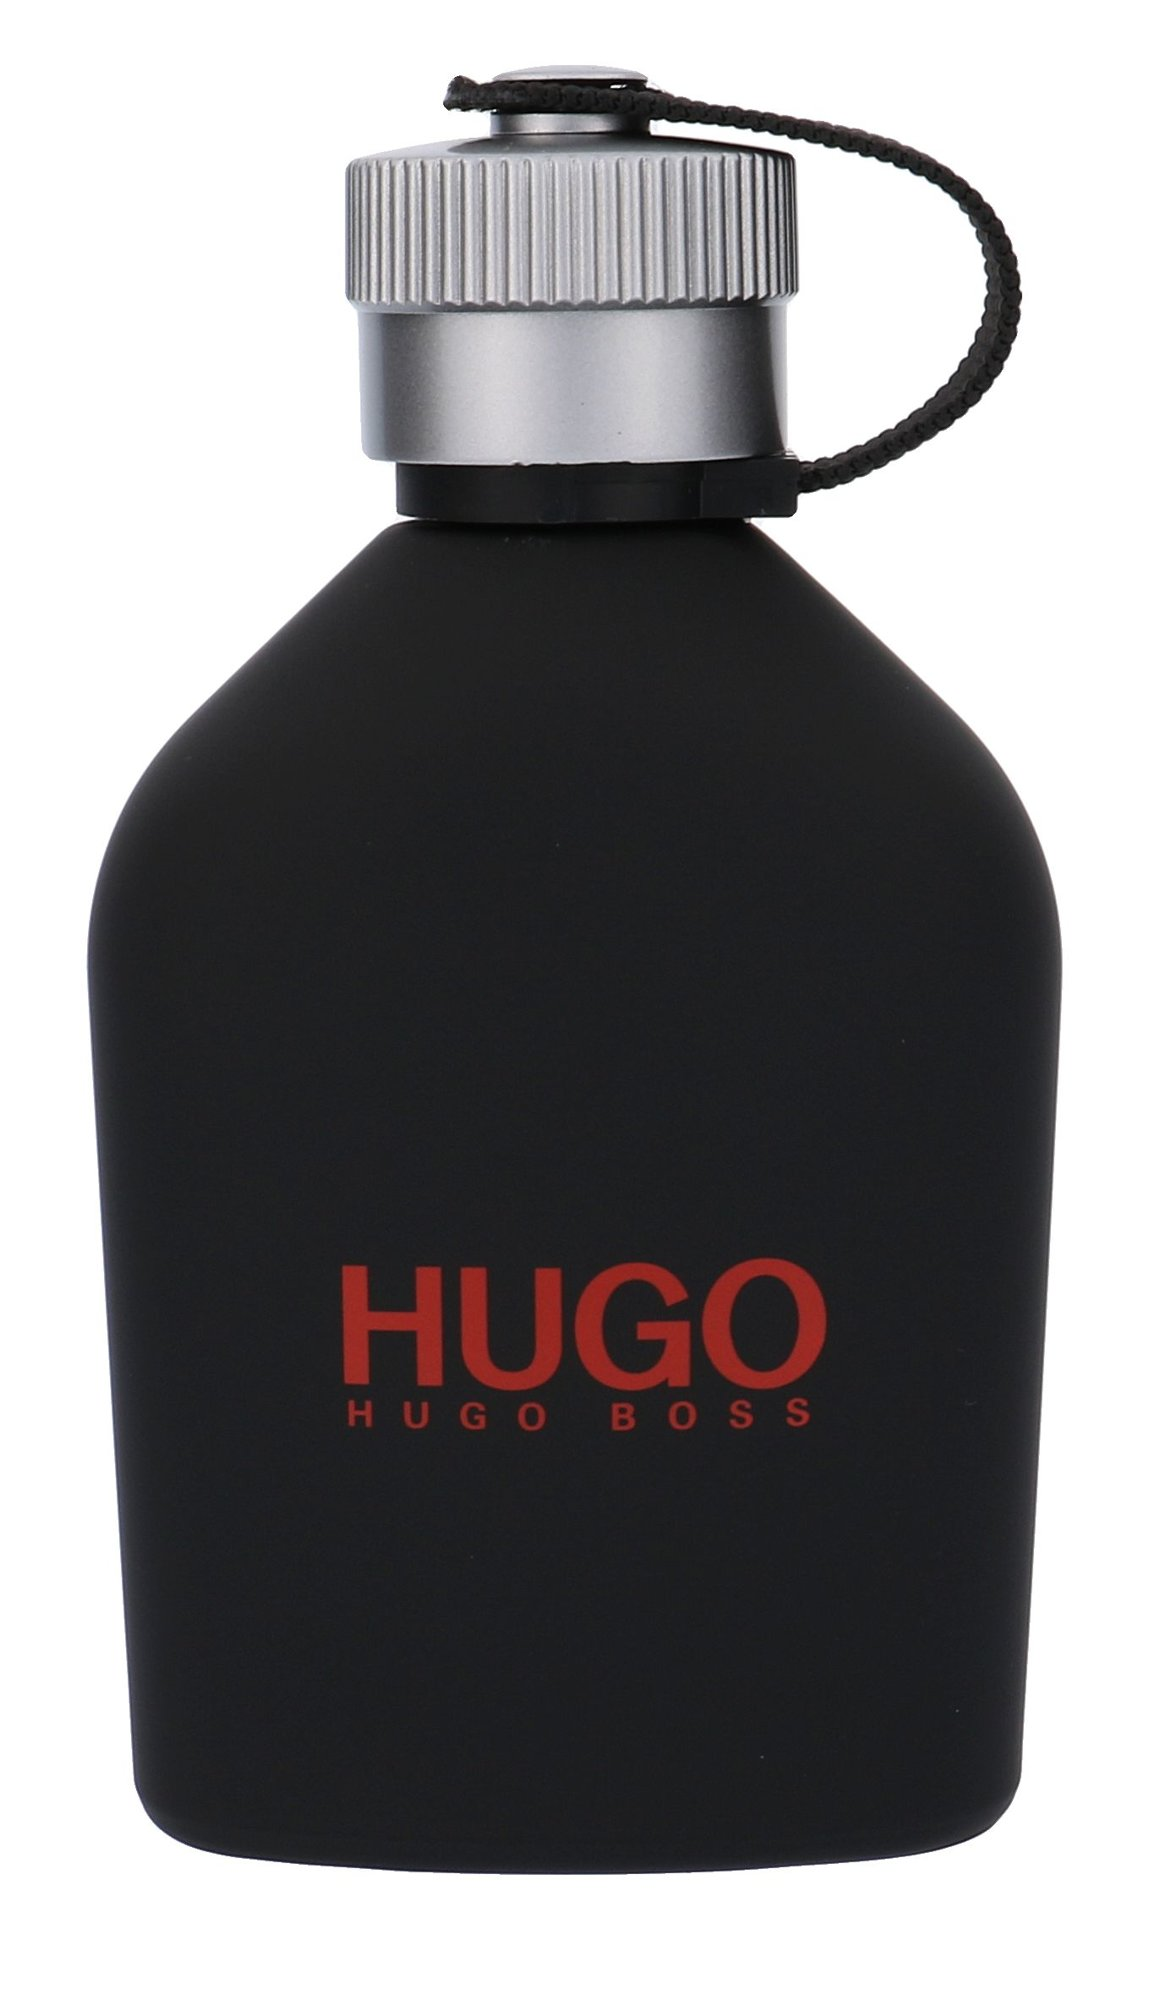 HUGO BOSS Hugo Just Different EDT 125ml